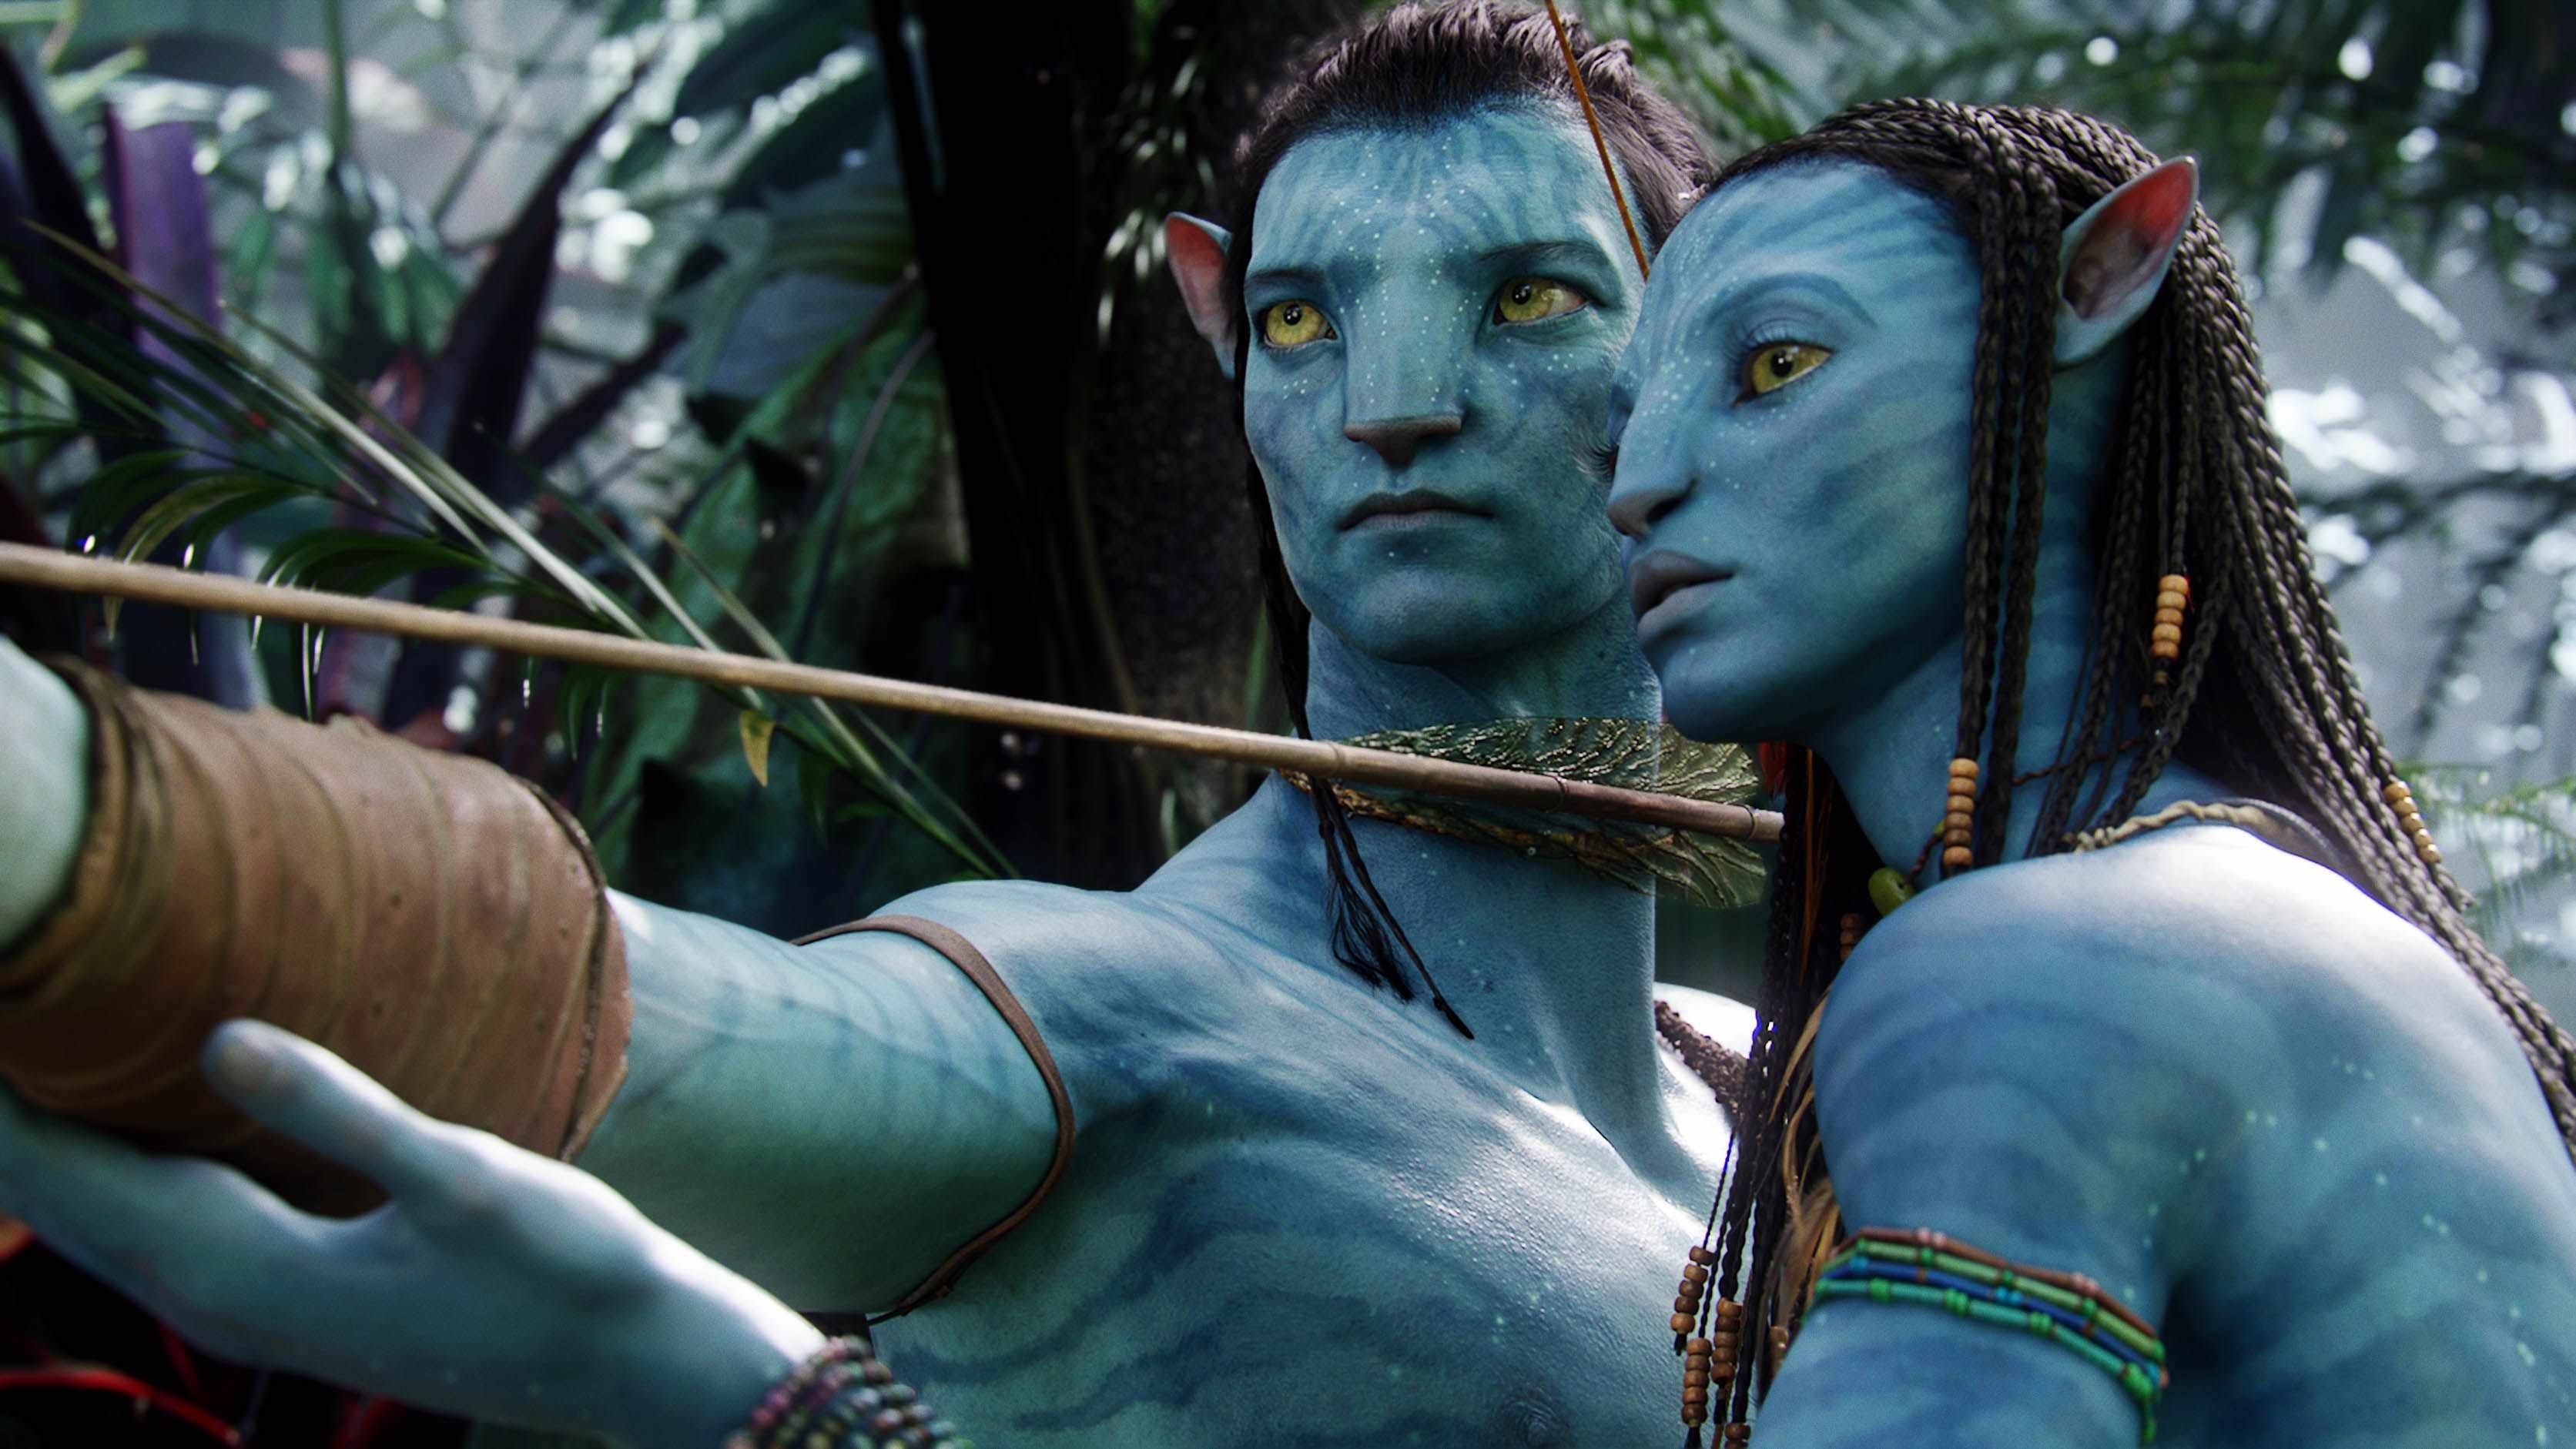 Wallpaper: Jake e Neytiri nel film Avatar